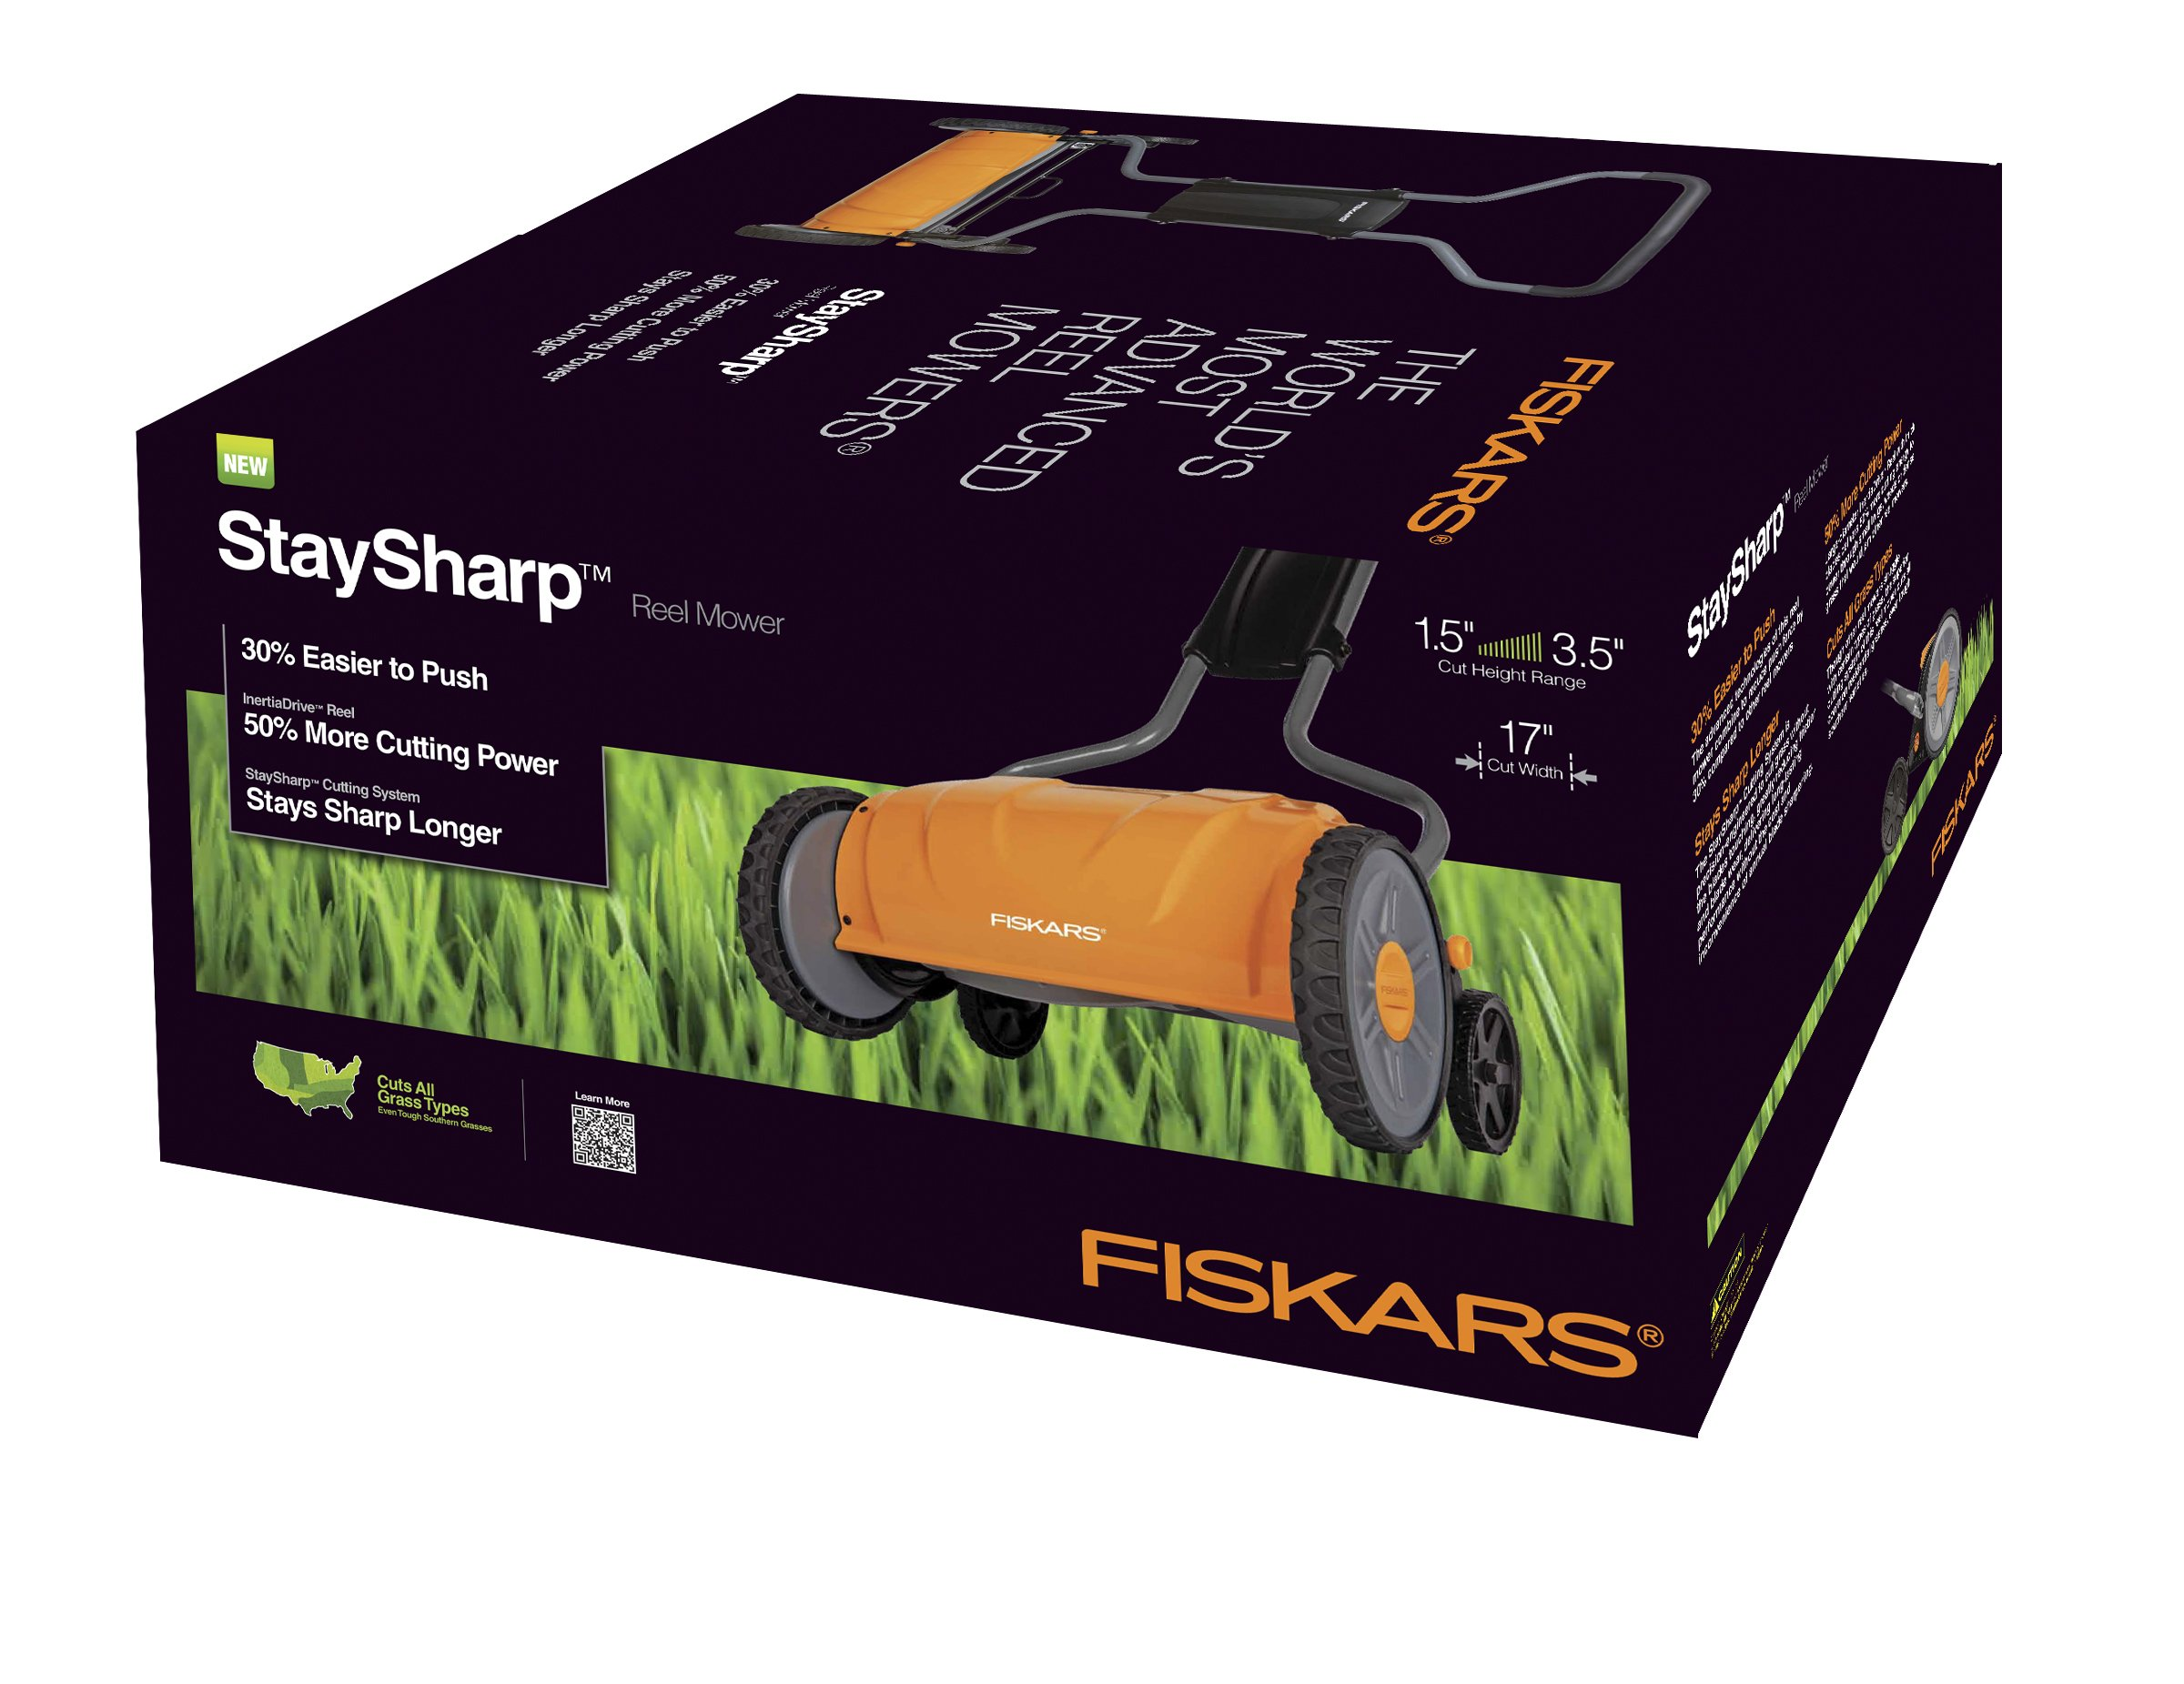 Fiskars 17 inch Staysharp Push Reel Lawn Mower (6208) (Pack of 2) 5 The smart design of our eco-friendly reel mower offers a cleaner cut without the hassles of gasoline, oil, battery charging, electrical cords or loud engine noise A combination of advanced technologies make the StaySharp Reel Mower 30 percent easier to push than other reel mowers Patent-pending InertiaDrive Reel delivers 50 percent more cutting power to blast through twigs, weeds and tough spots that would jam other reel mowers